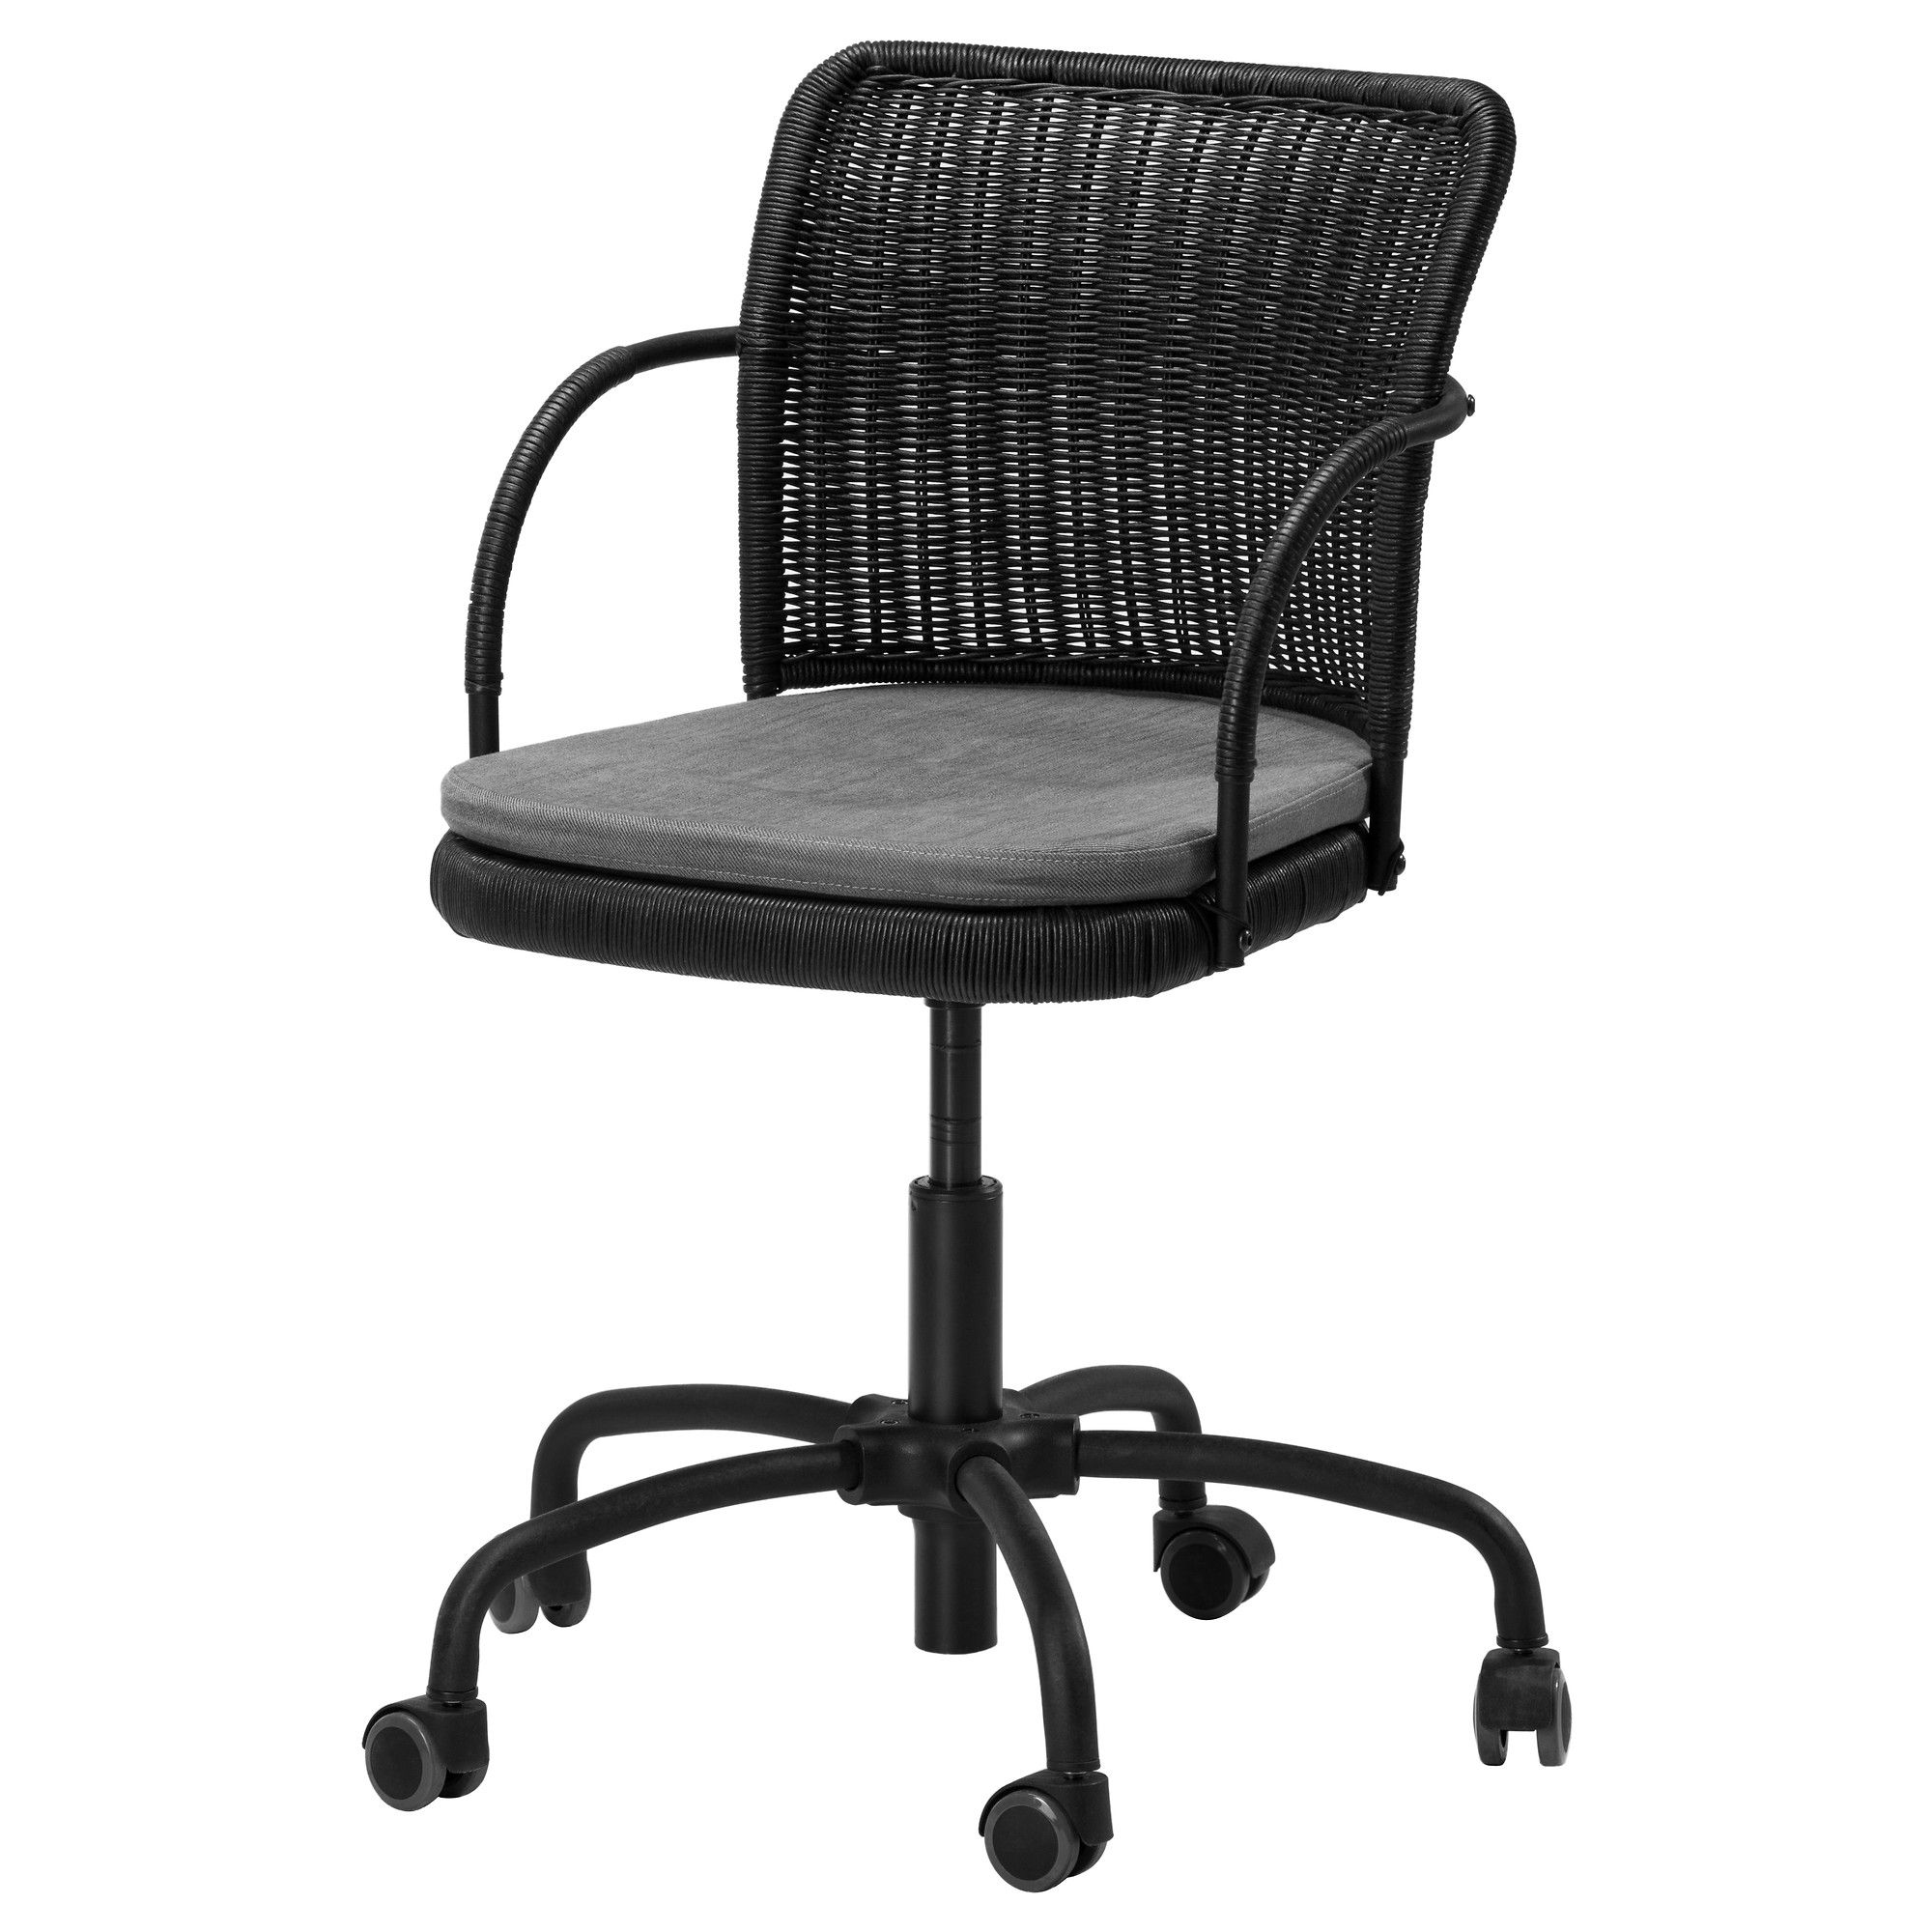 Ikea Us Furniture And Home Furnishings Ikea Desk Chair Chair Swivel Chair